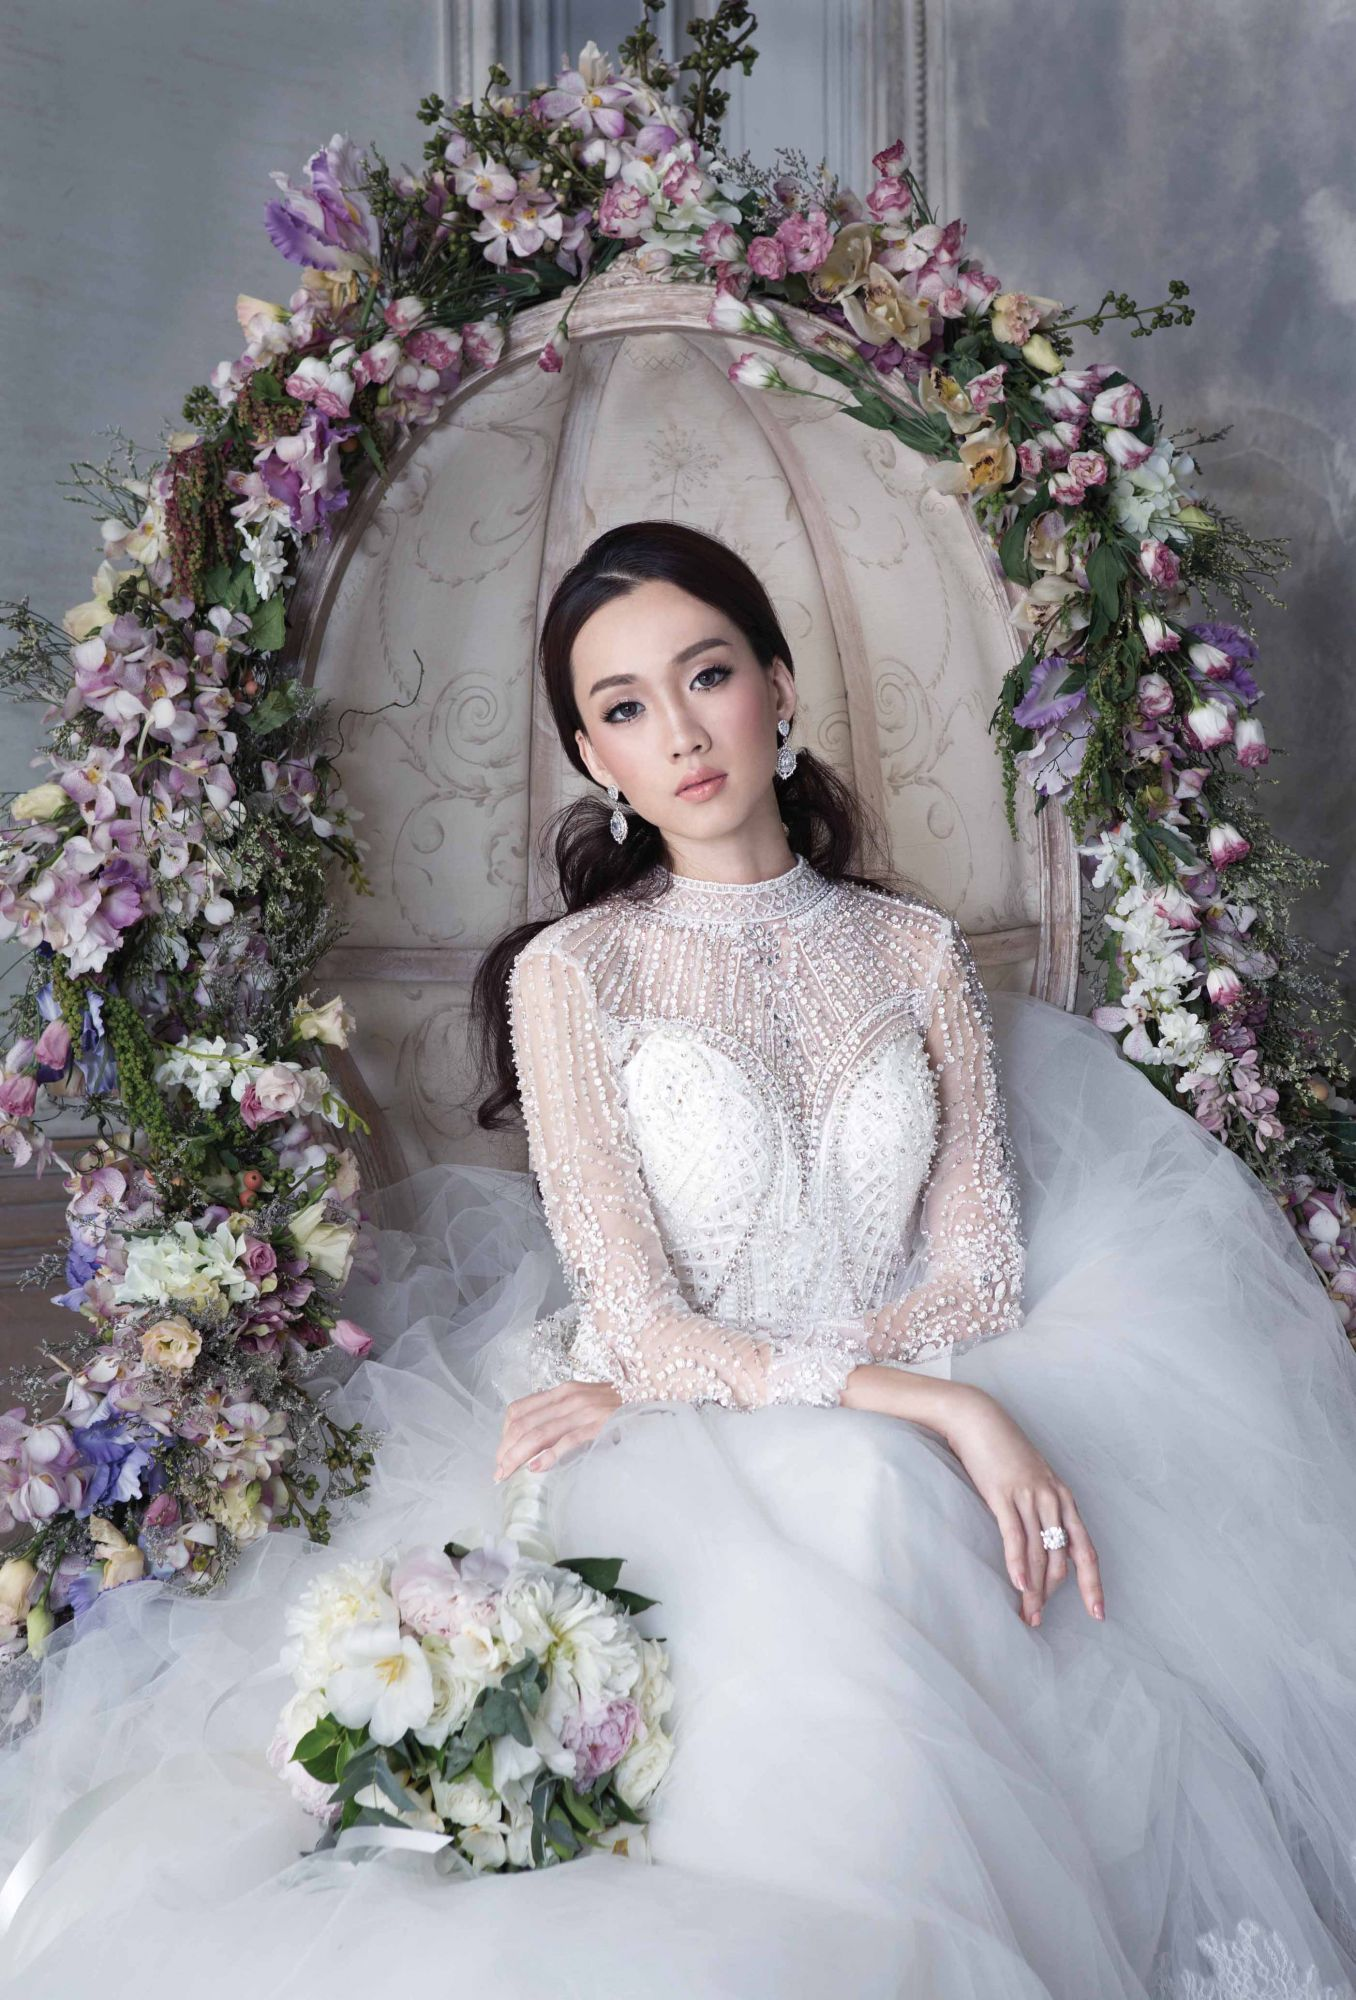 7 Wedding Trends To Look Out For In 2018